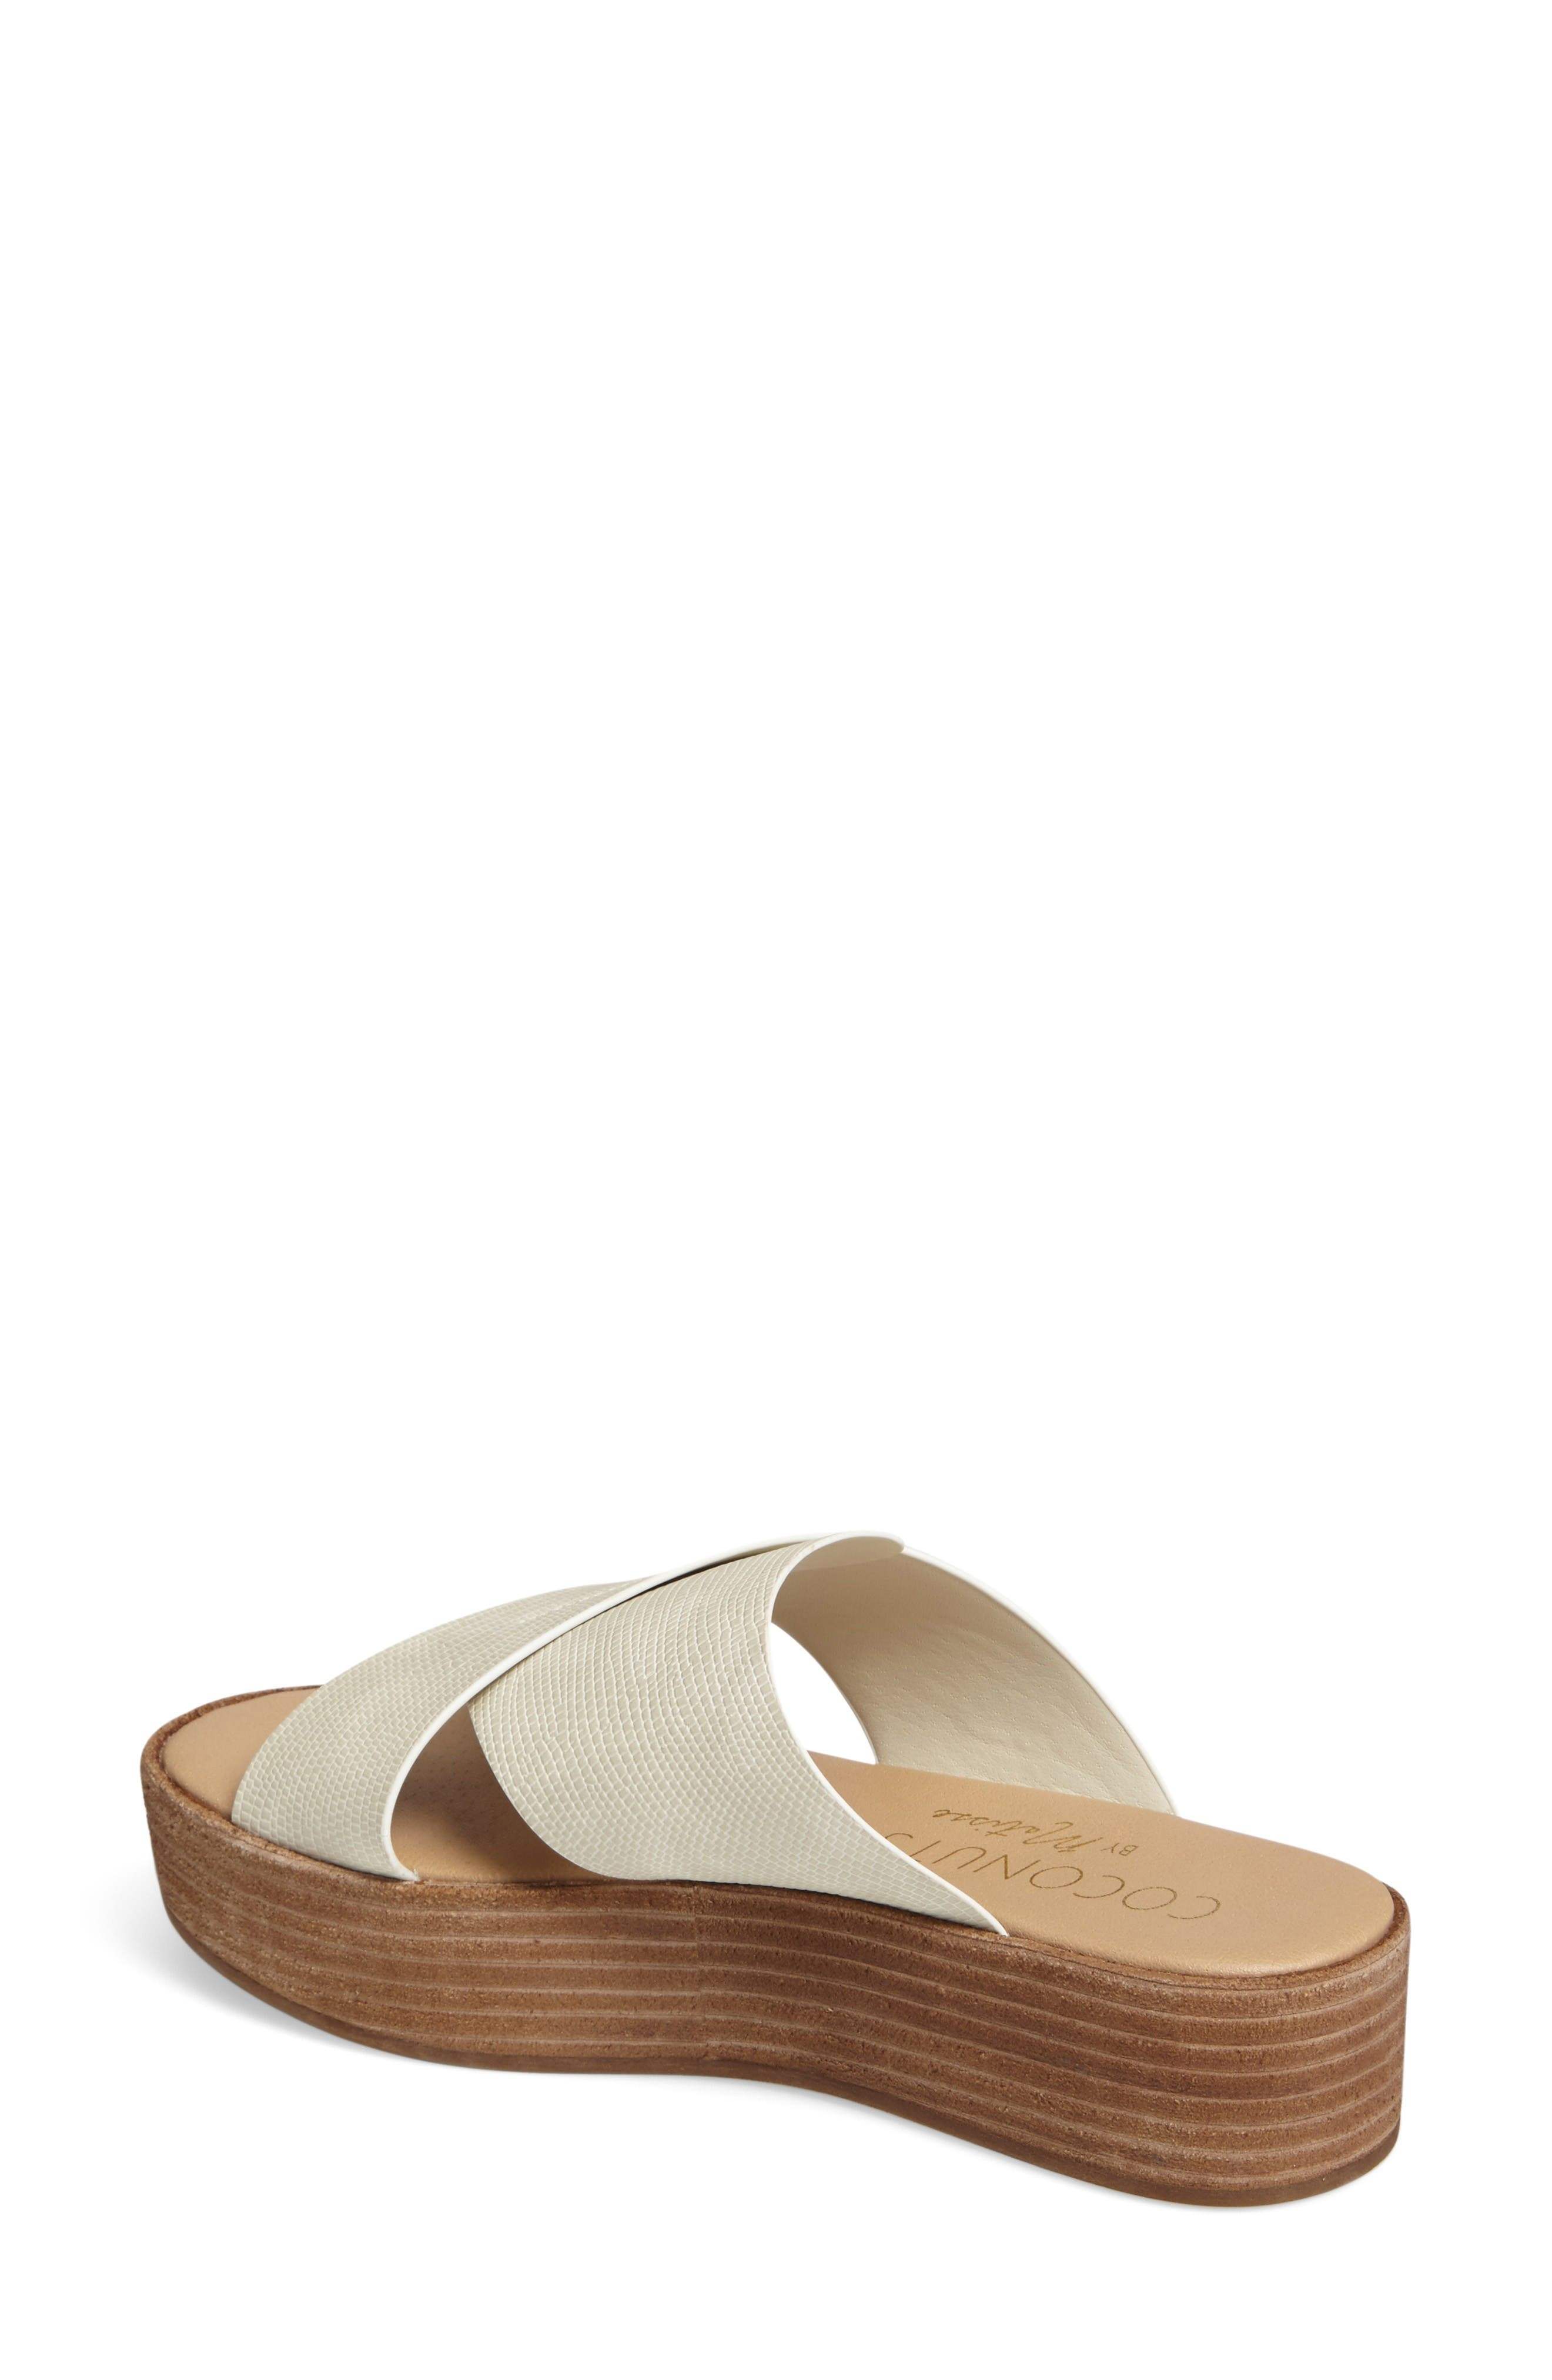 Coconuts by Matisse Masters Cross Strap Platform Sandal,                             Alternate thumbnail 2, color,                             White Leather